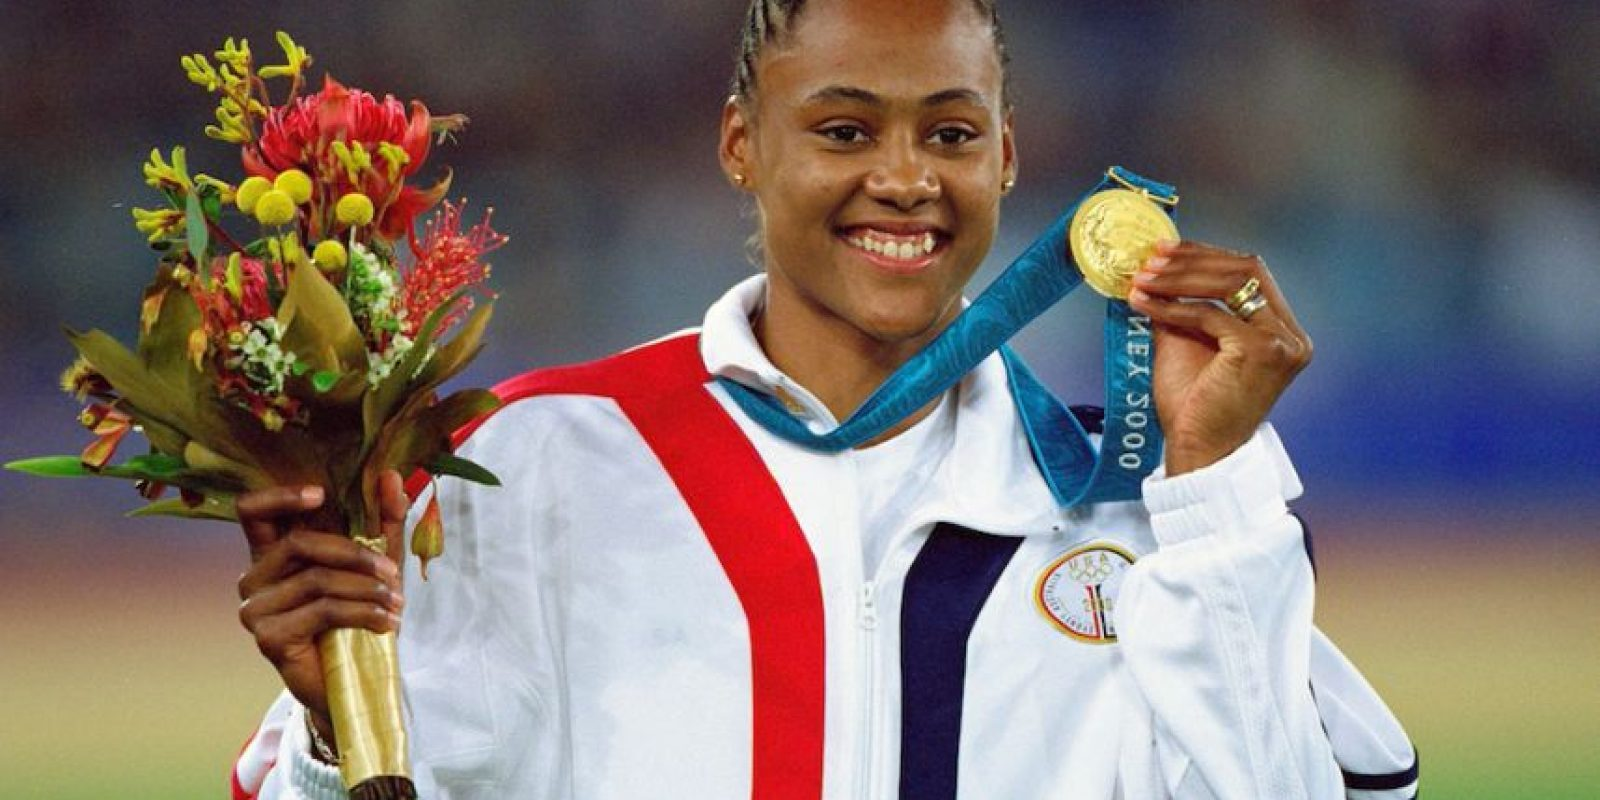 Marion Jones, exatleta estadounidense. Foto: Getty Images